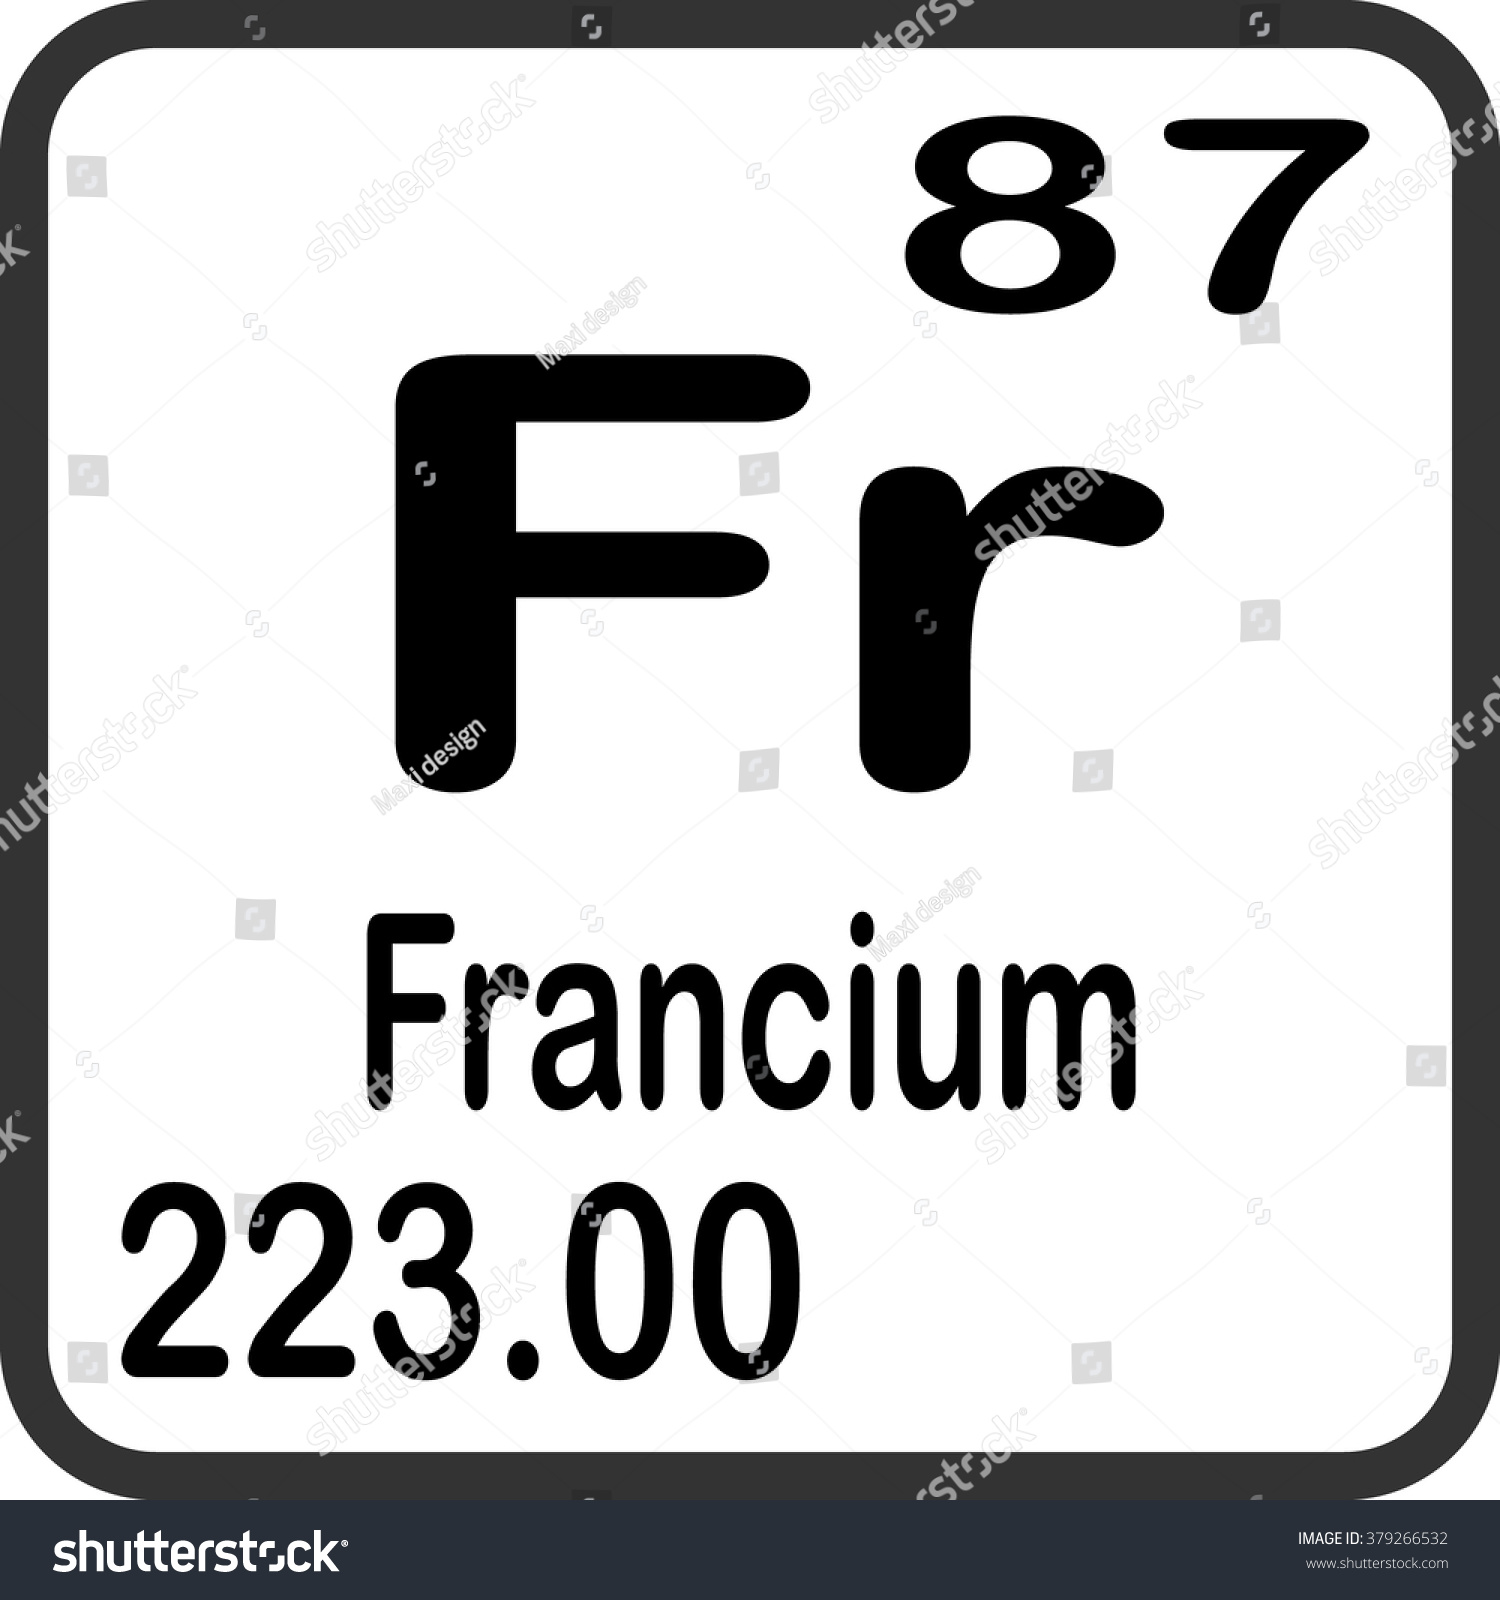 Periodic table cl gallery periodic table images francium on periodic table aviongoldcorp periodic table elements francium stock vector 379266532 shutterstock gamestrikefo gallery gamestrikefo Gallery